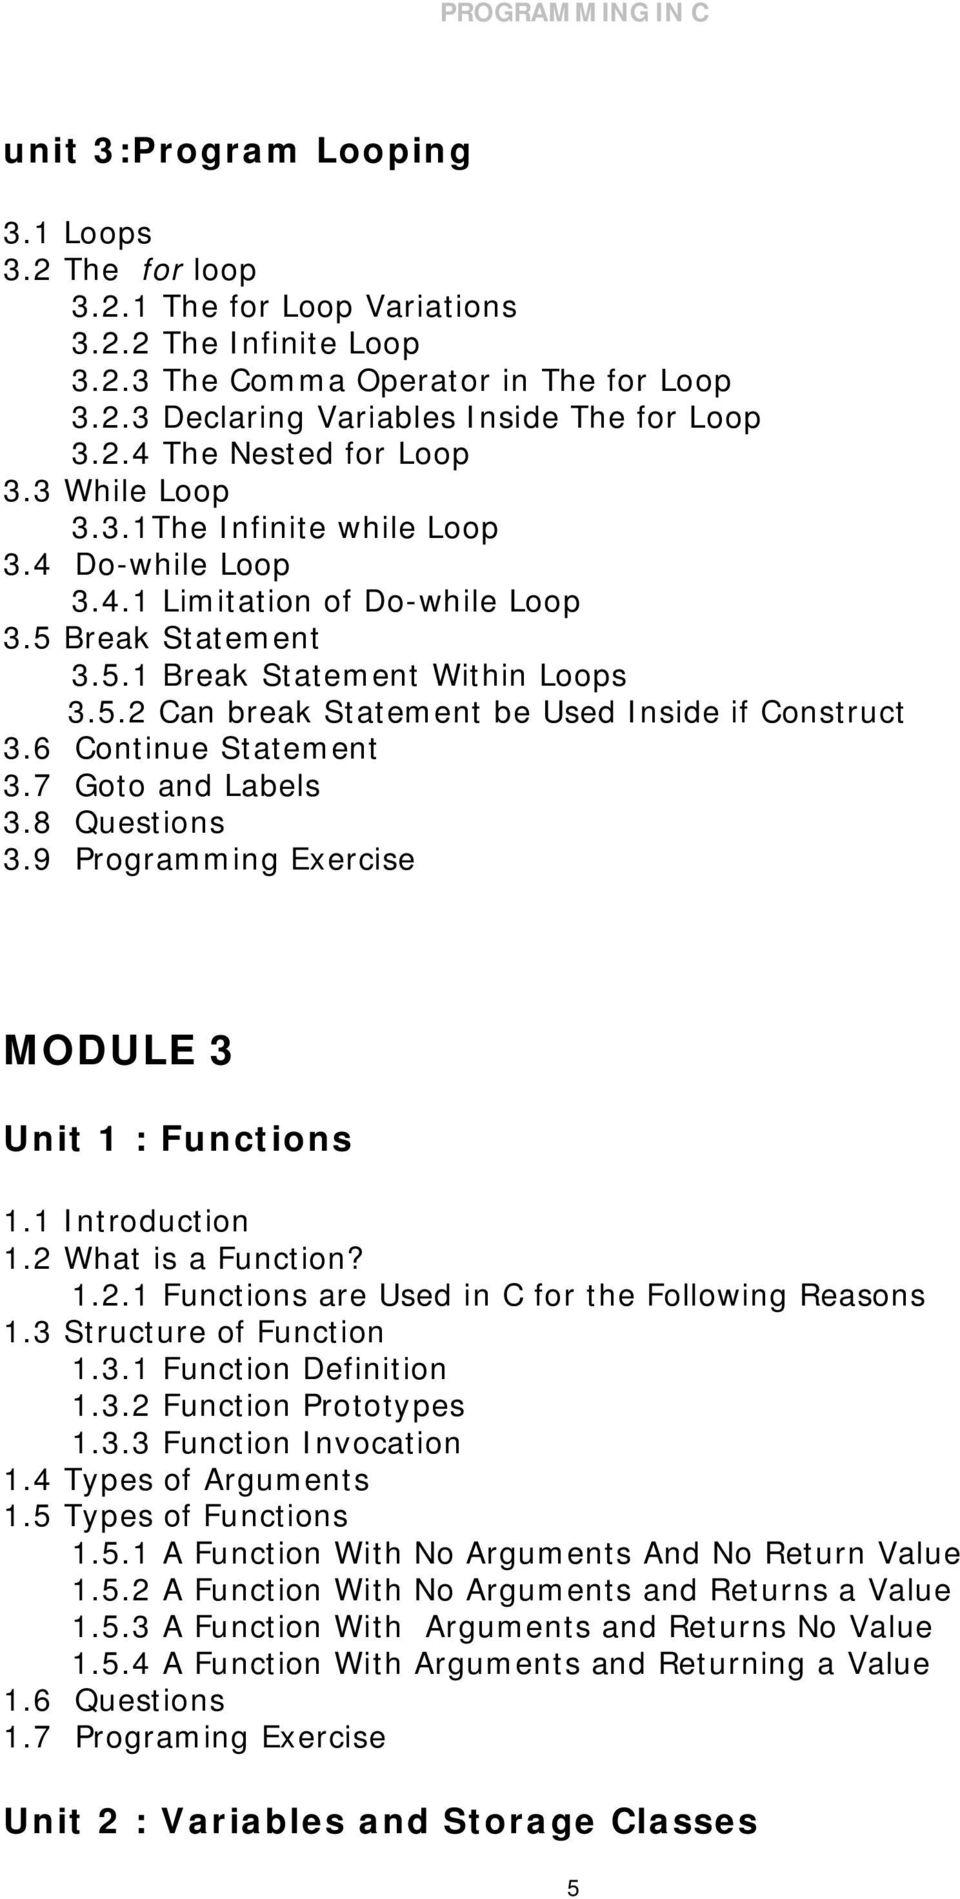 6 Continue Statement 3.7 Goto and Labels 3.8 Questions 3.9 Programming Exercise MODULE 3 Unit 1 : Functions 1.1 Introduction 1.2 What is a Function? 1.2.1 Functions are Used in C for the Following Reasons 1.